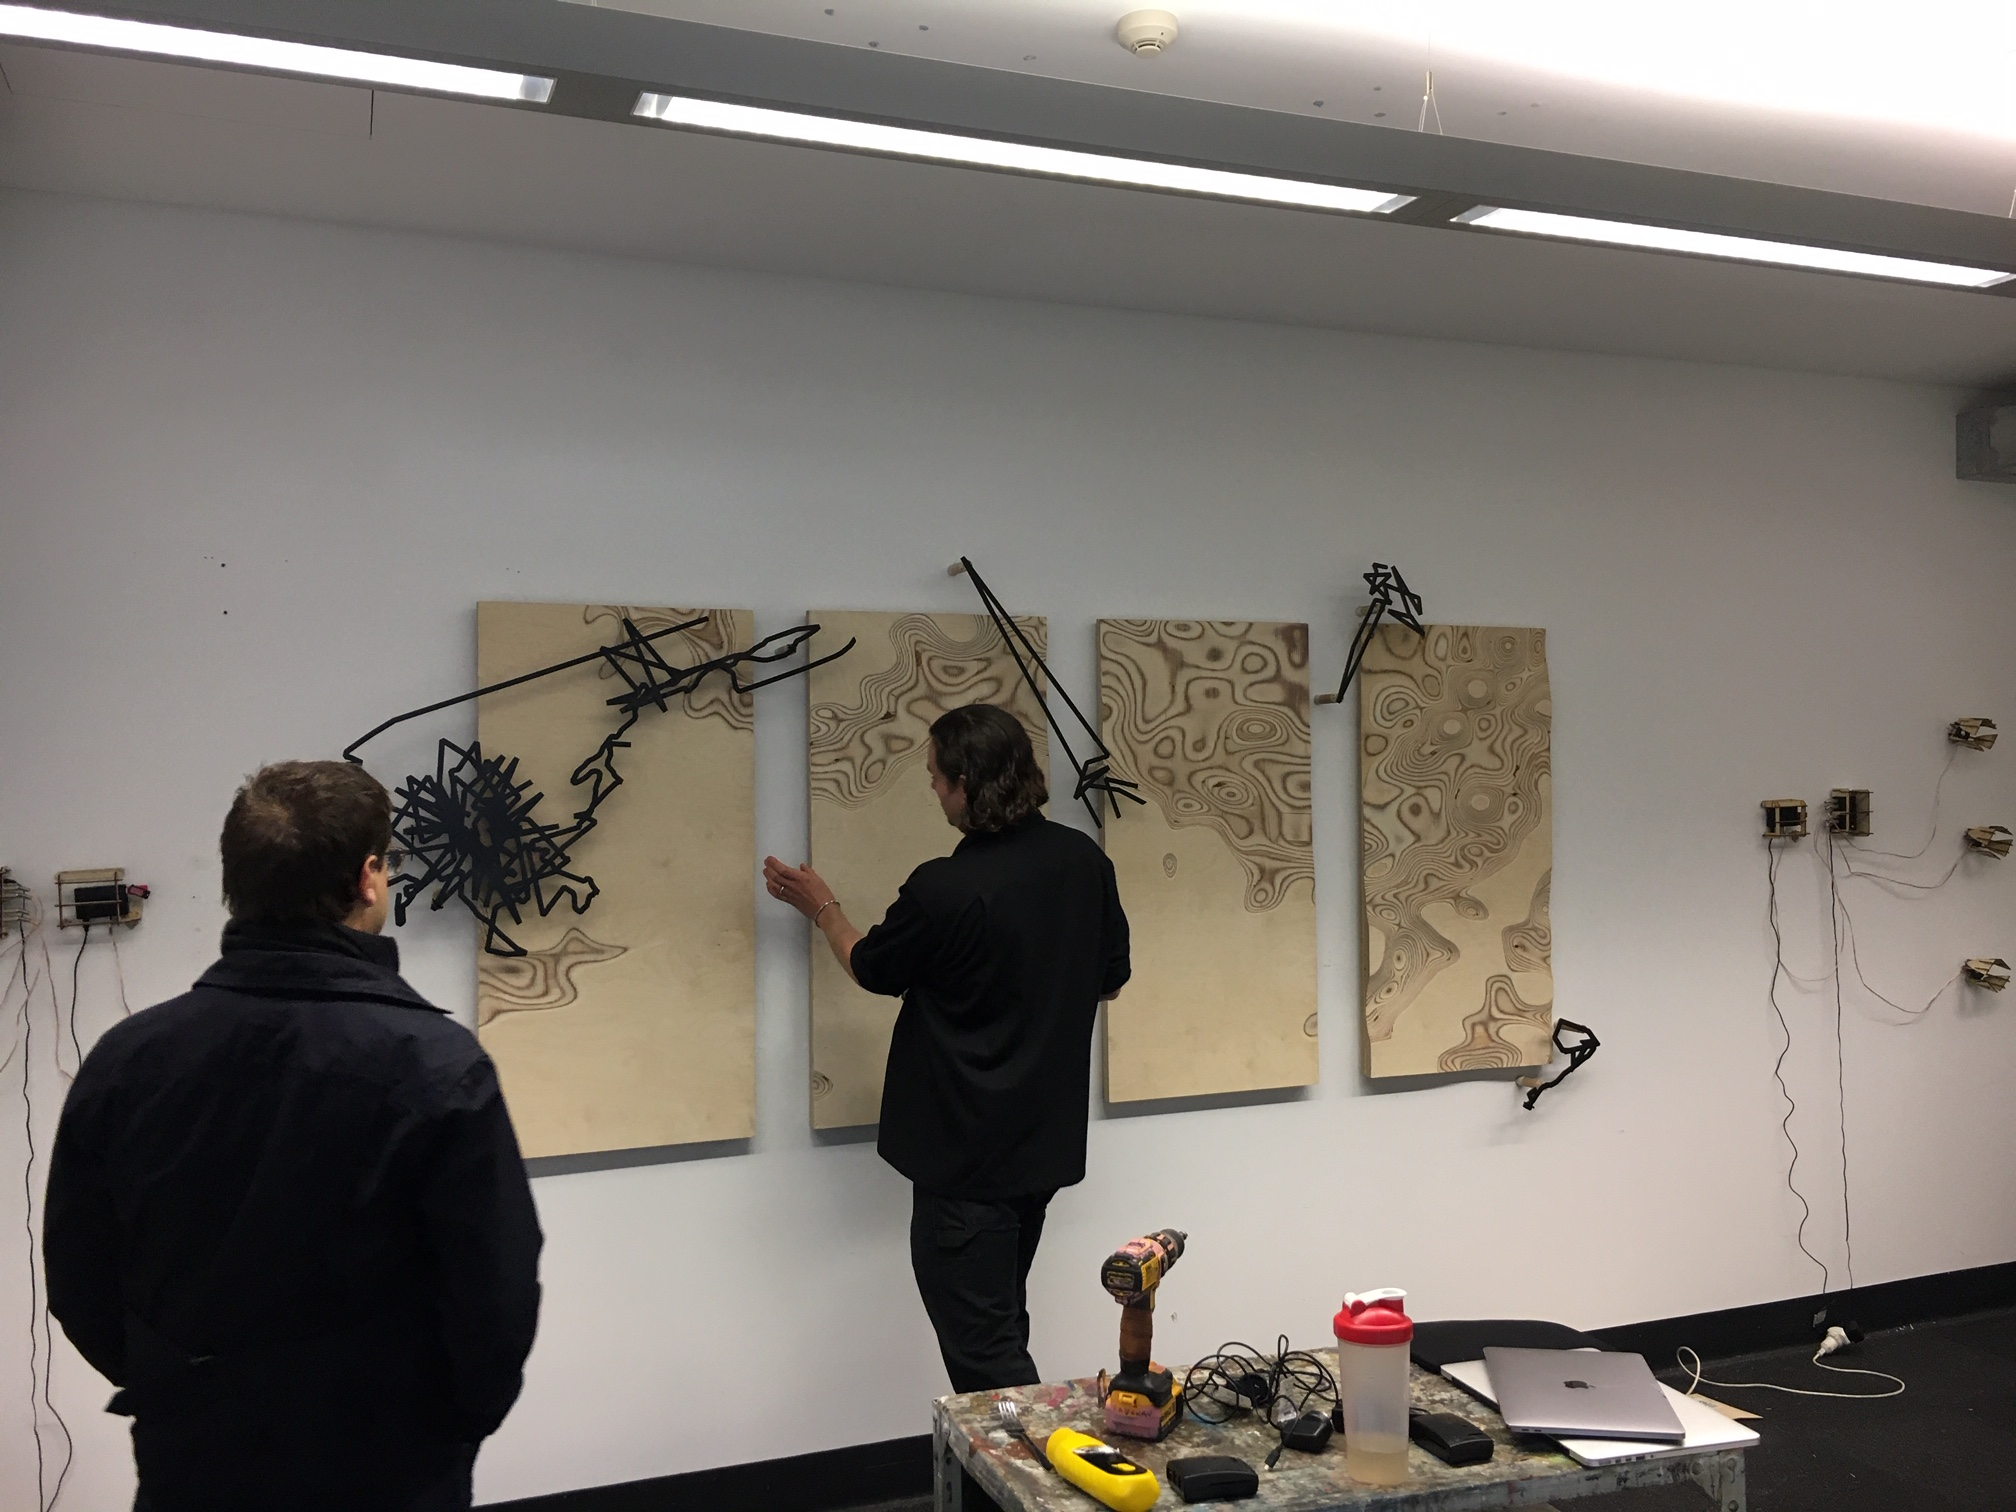 Studio visit with Vincent and Vaughan Wozniak-O'Connor with Material Sound curator Caleb Kelly, 2020